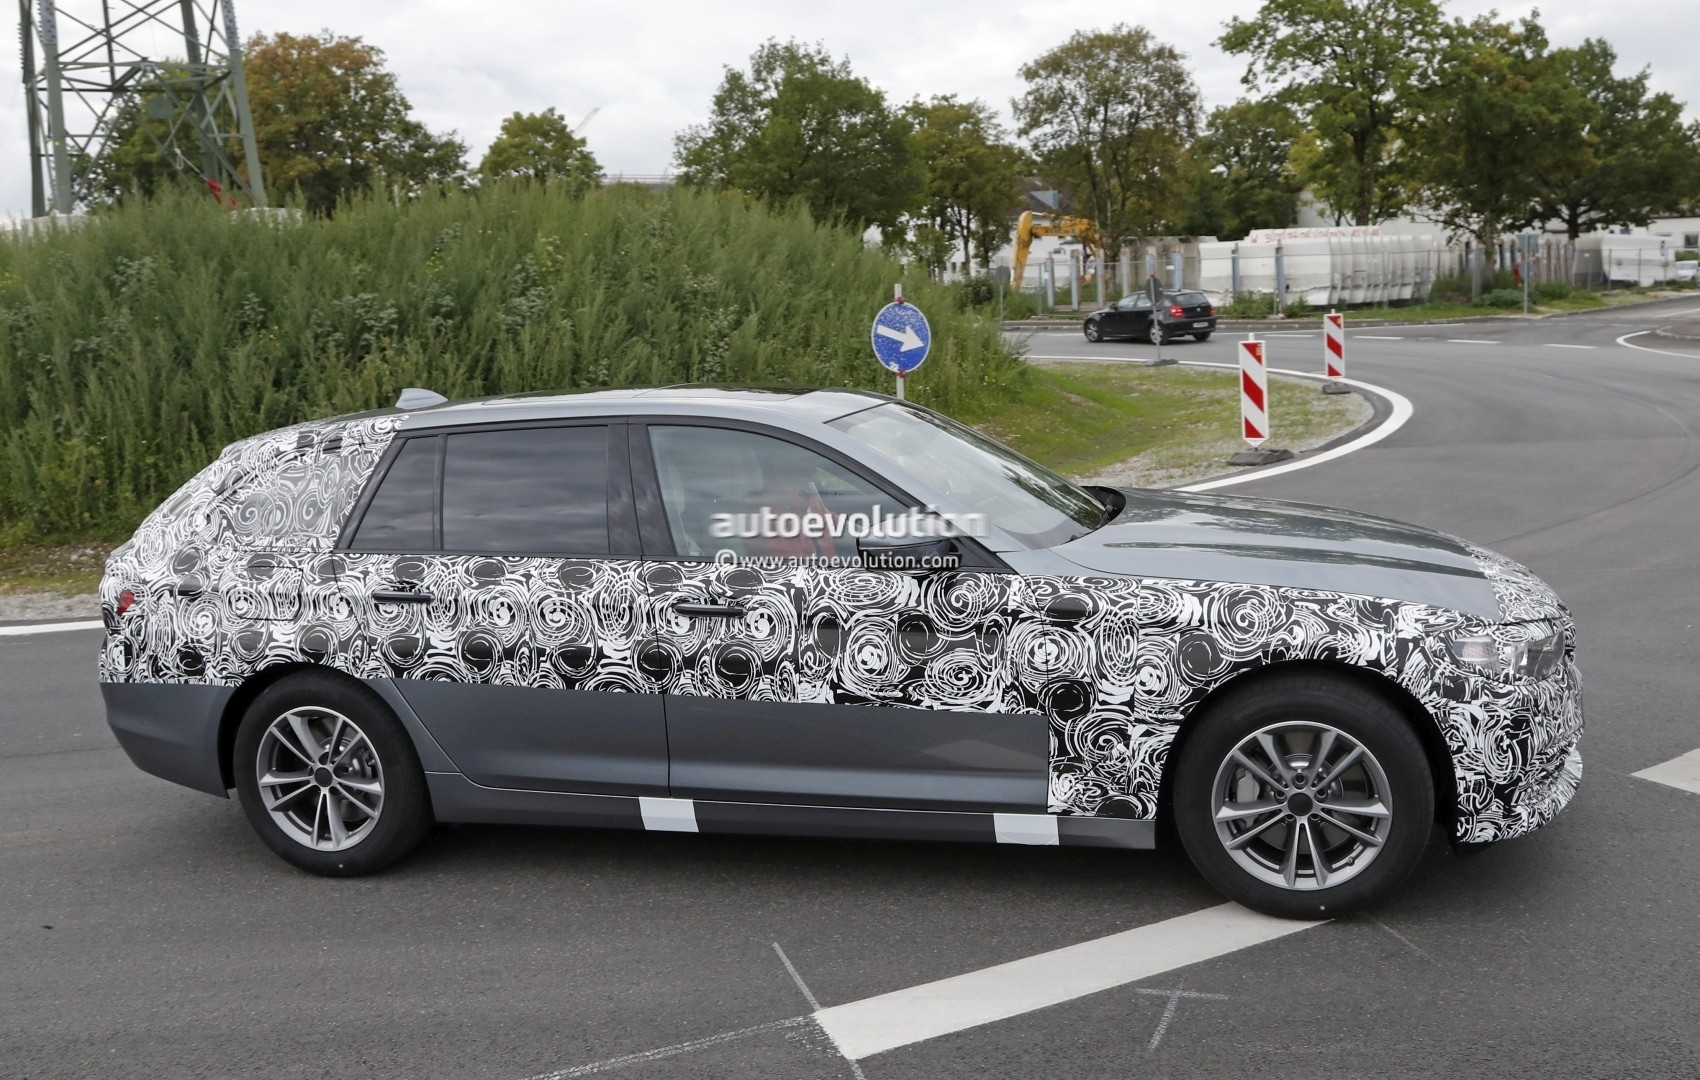 2017 Bmw 5 Series Touring Pre Production Car Loses Some Camo Sedan Spied With Less